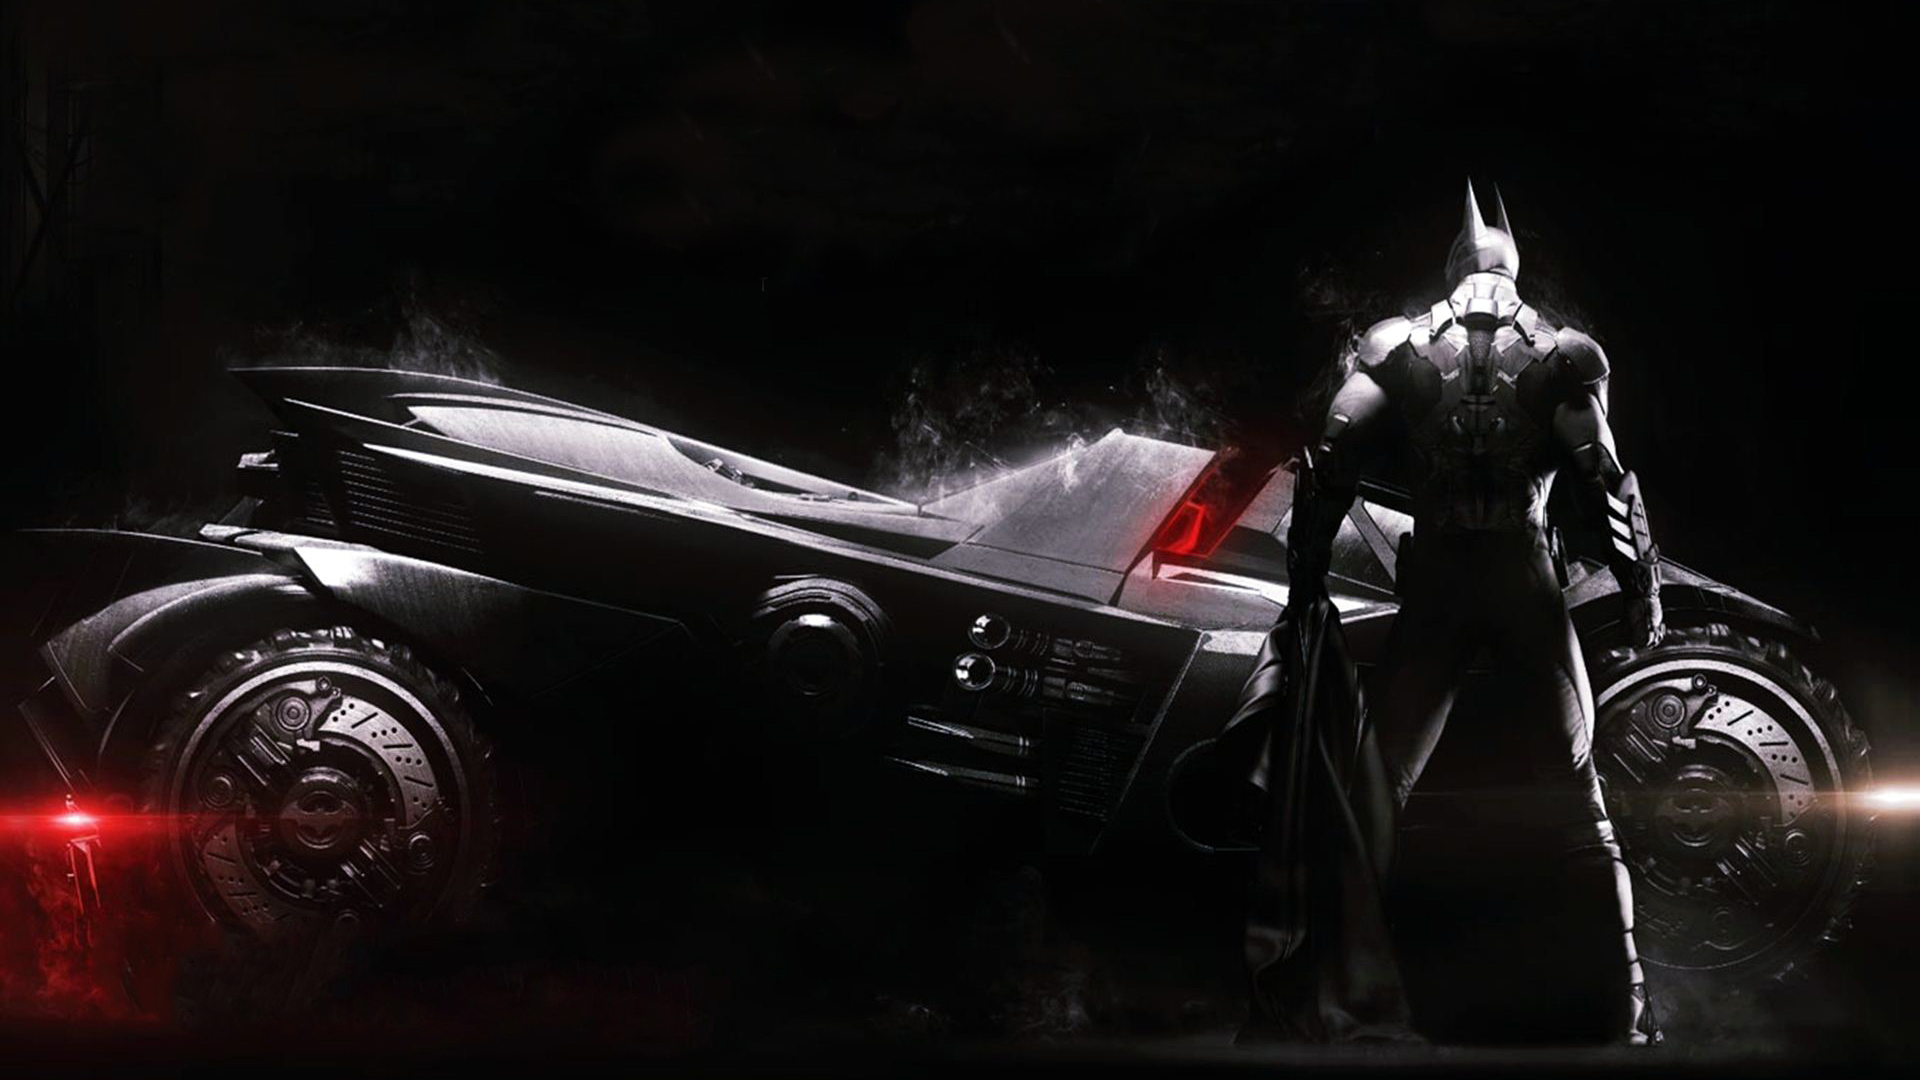 Batman and New Batmobile 2r Wallpaper HD